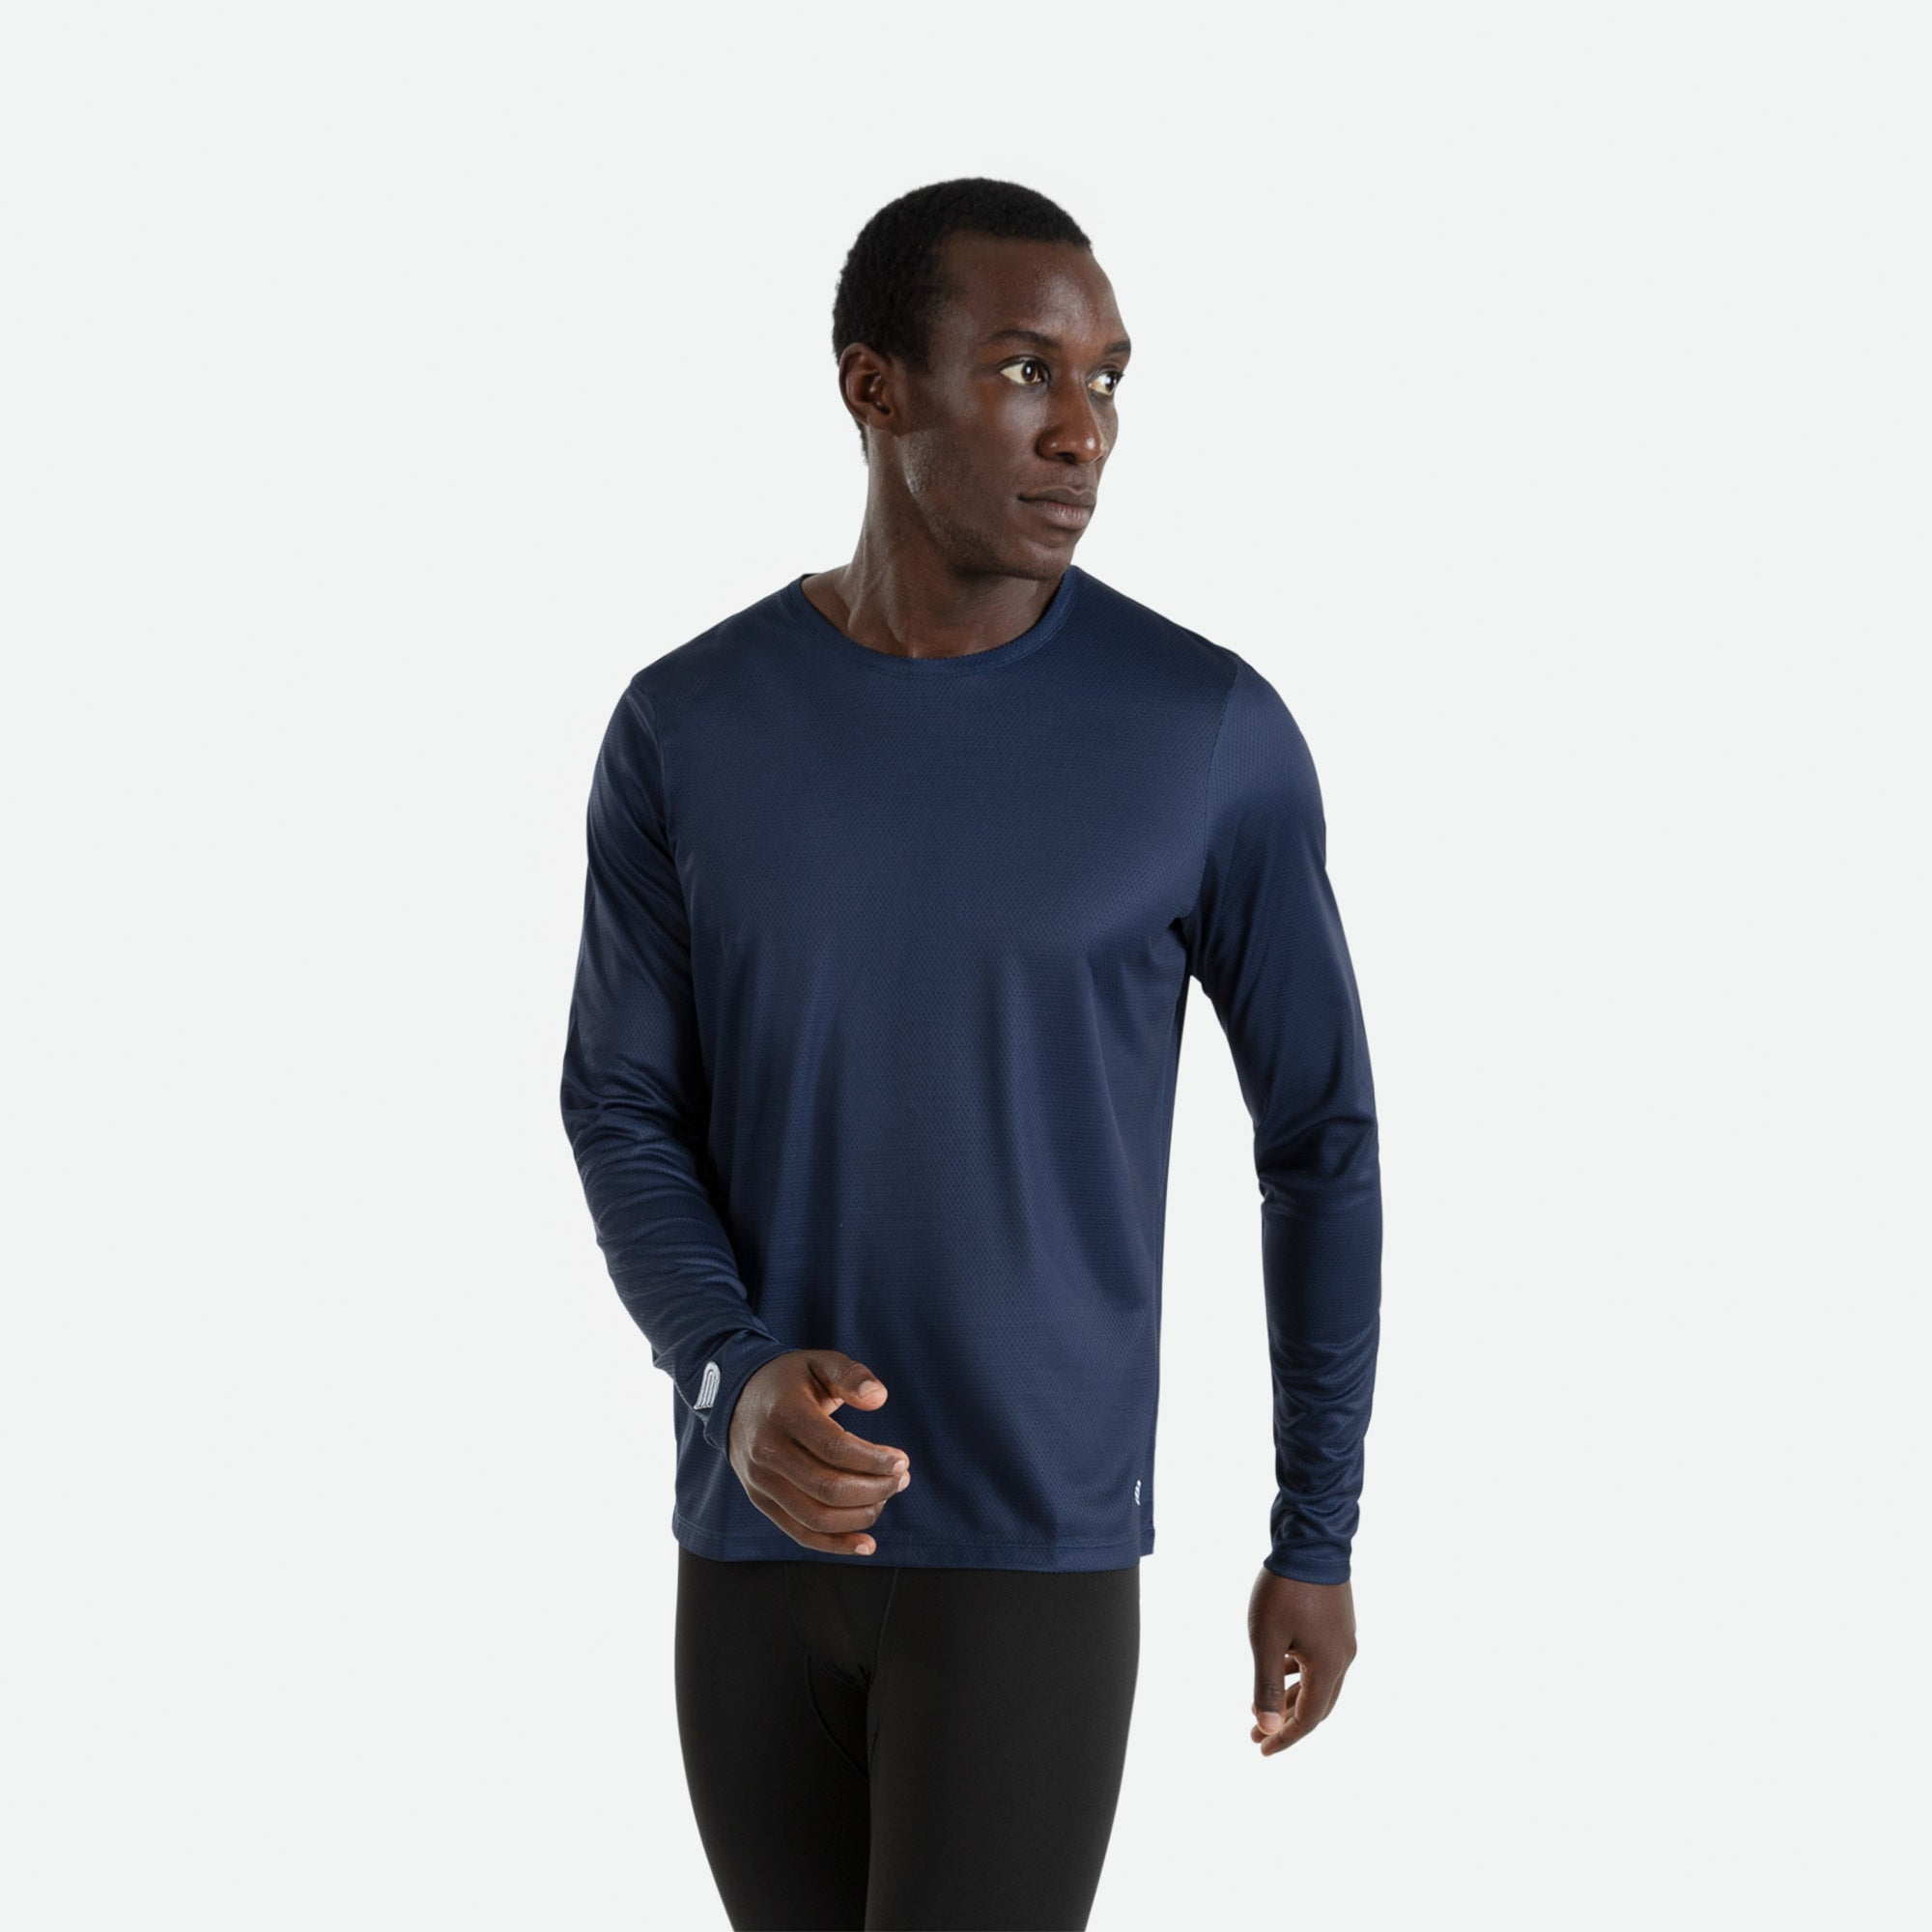 Our Pressio men's navy Hāpai long sleeve t-shirt features EcoTECH MF fabric which has dual filament recycled polyester yarns from Unifi for superior moisture control to keep you dry.